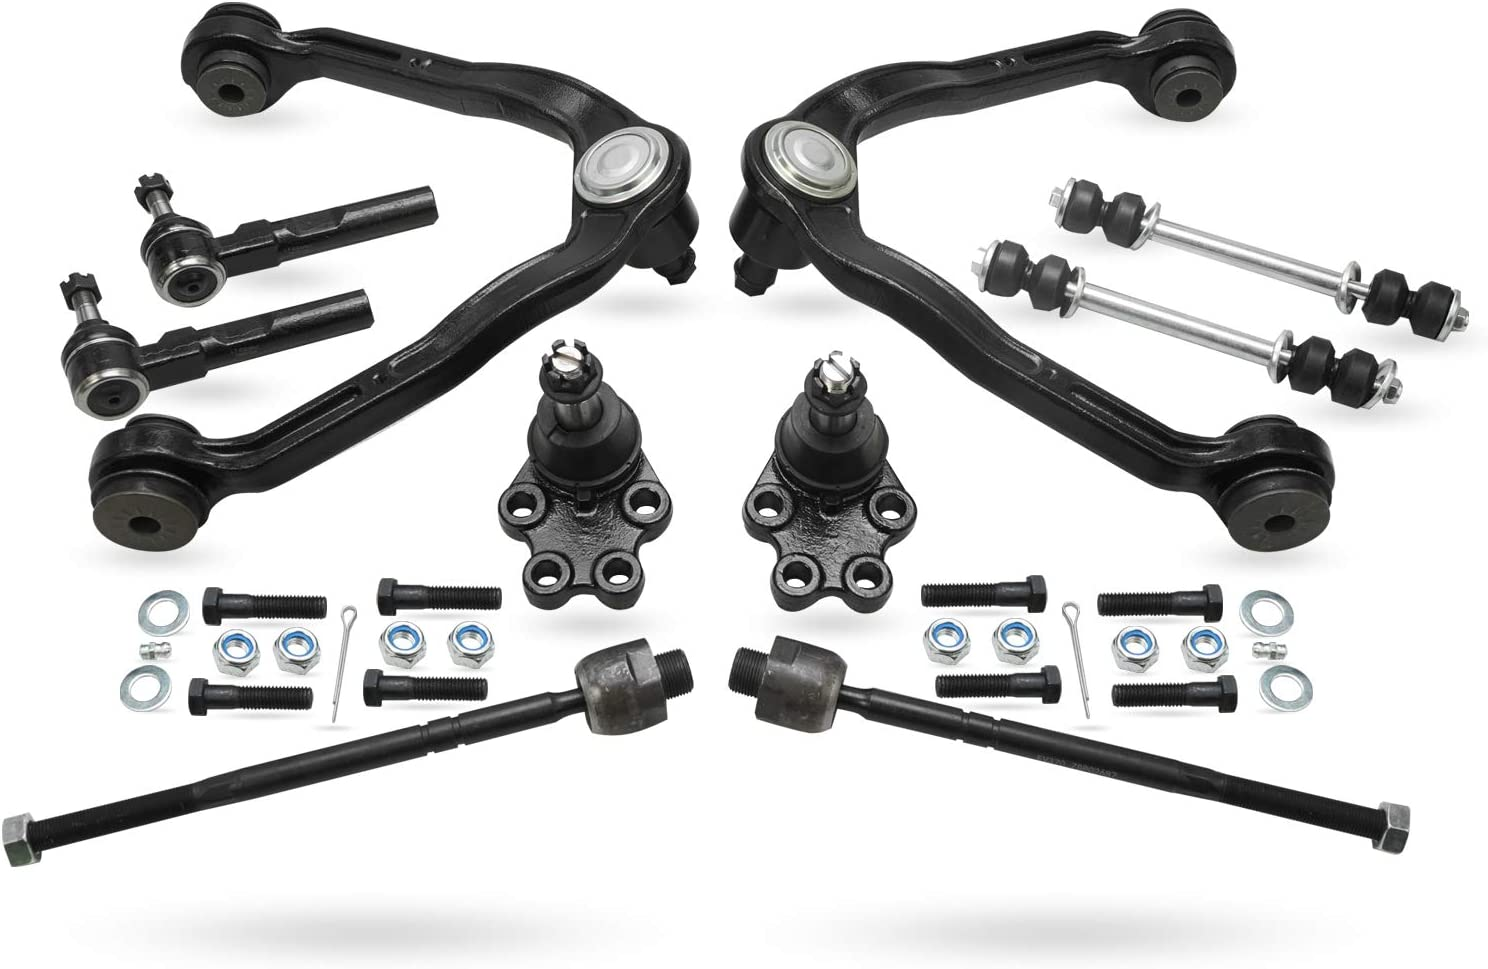 Sway Bars Detroit Axle Inner Outer Tie Rods w//Rack Boots and Bellow Kit for 2007 2008 2009 2010 2011 2012 Nissan Sentra 10pc Front Control Arms w//Ball Joint Assembly